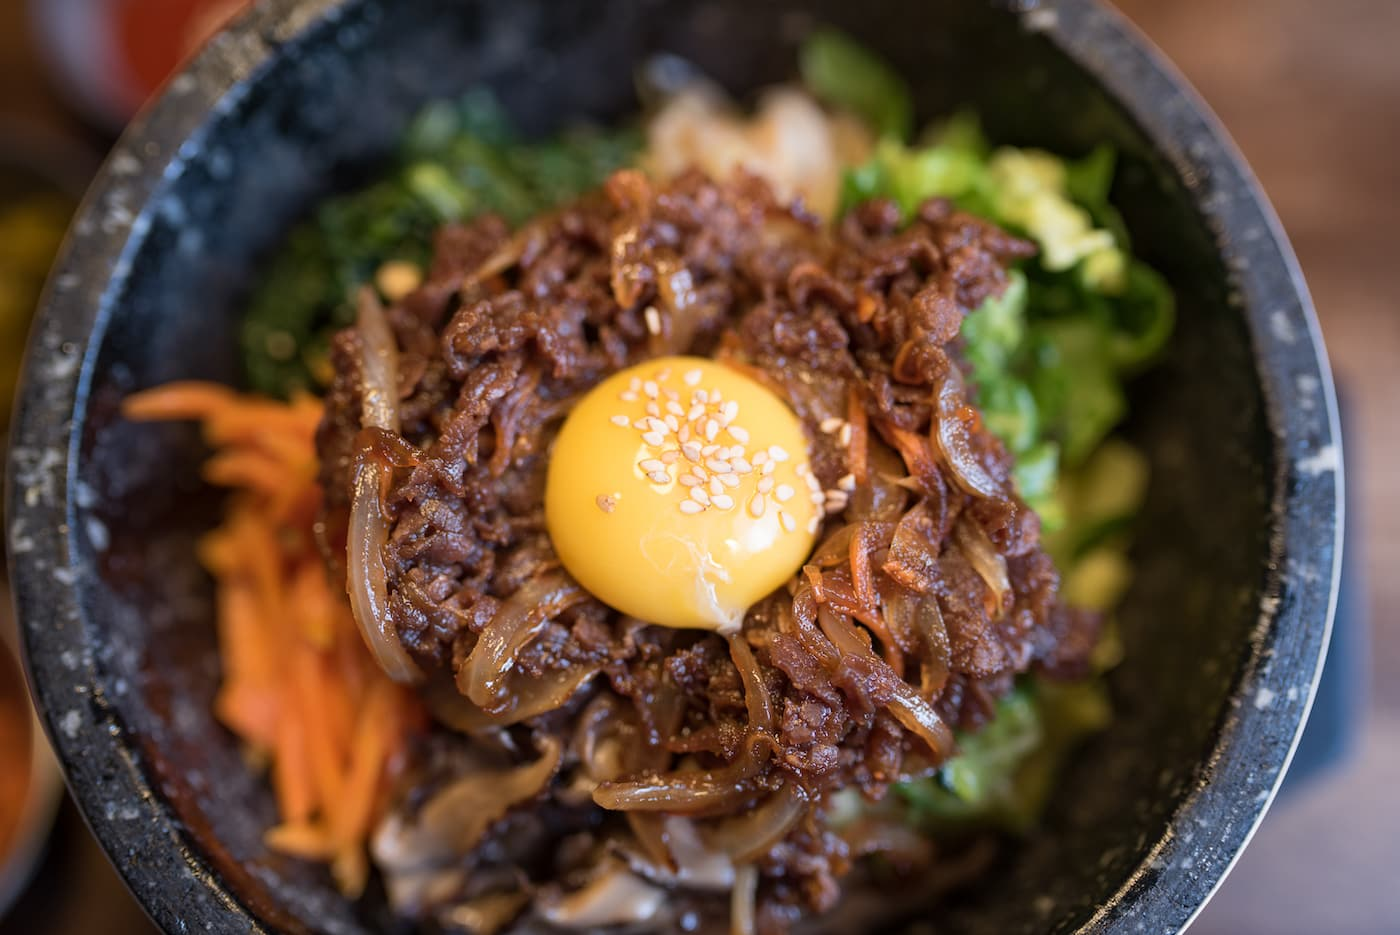 Korean food from Bulbap Grill